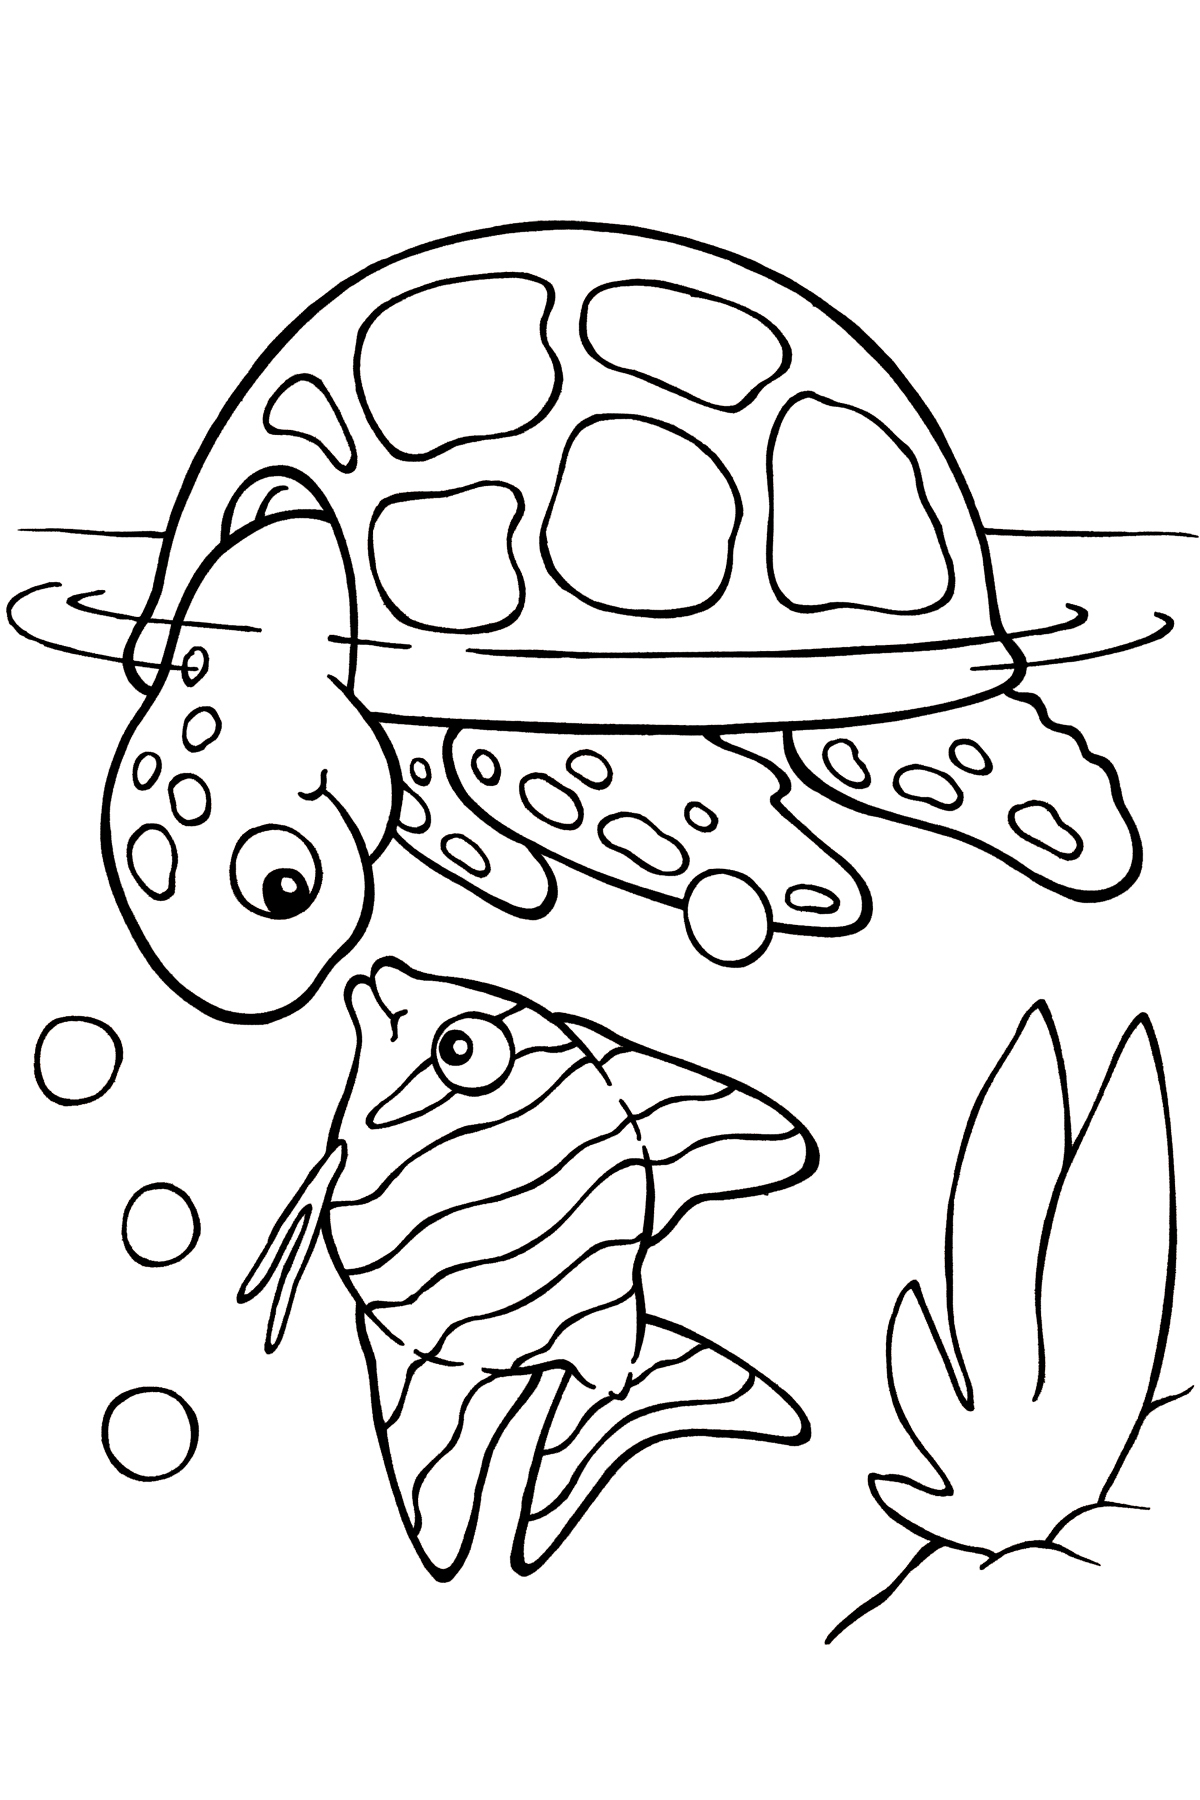 1200x1800 Fresh Coloring Coloring Pages Of Cute Things